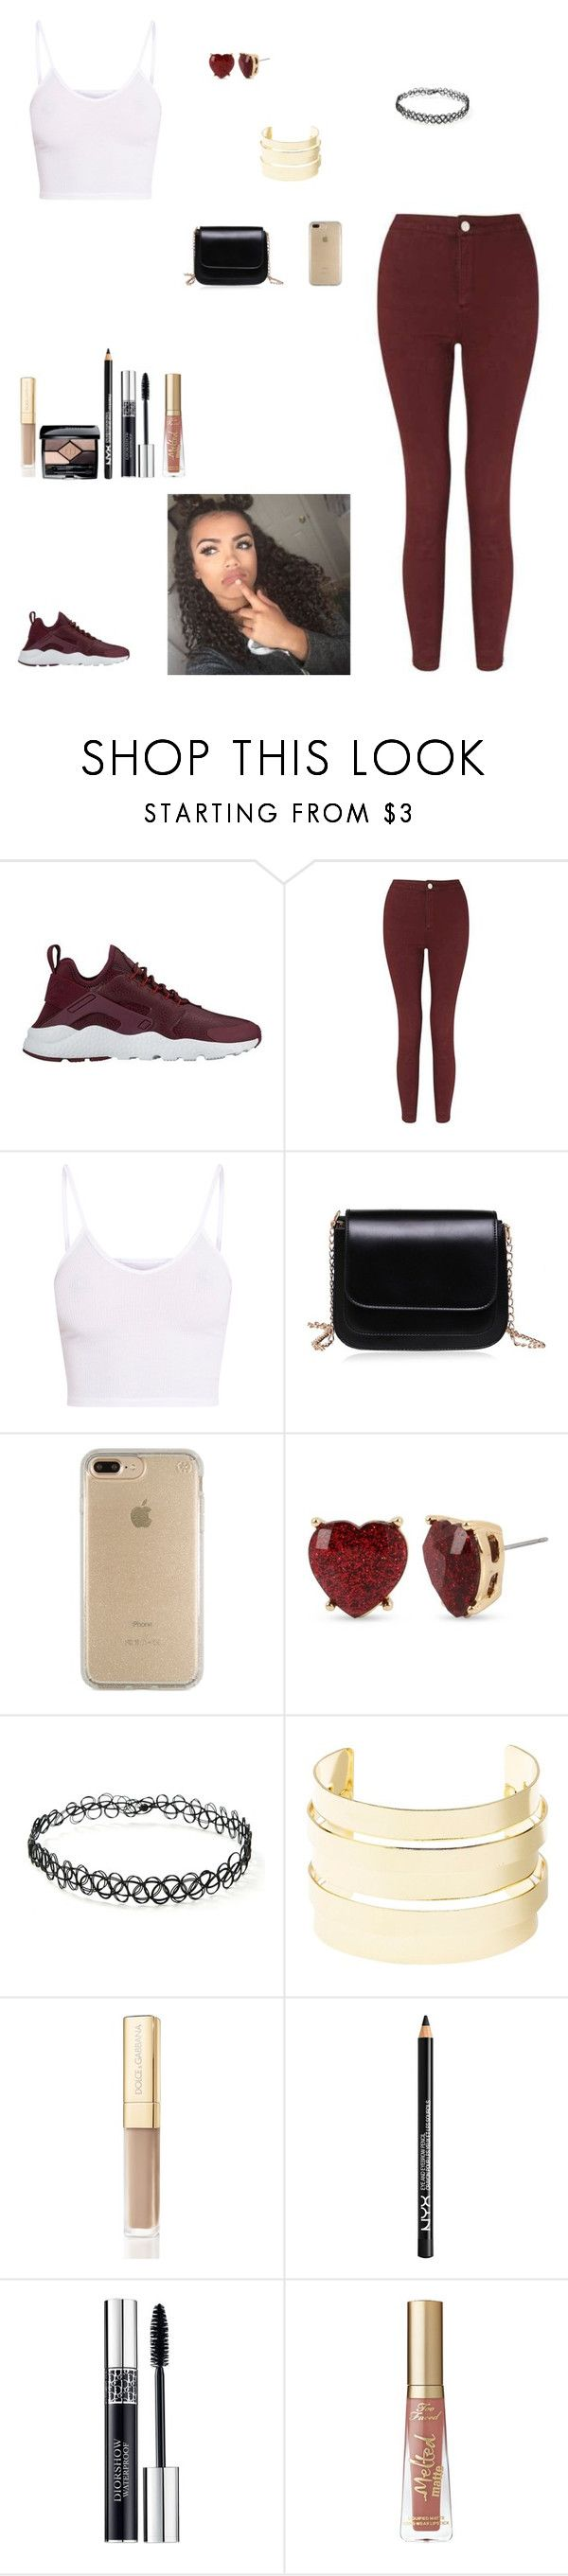 """""""burgundy and white"""" by kittykat125 ❤ liked on Polyvore featuring NIKE, Miss Selfridge, BasicGrey, Speck, Betsey Johnson, Forever 21, Charlotte Russe, Dolce&Gabbana, NYX and Christian Dior"""